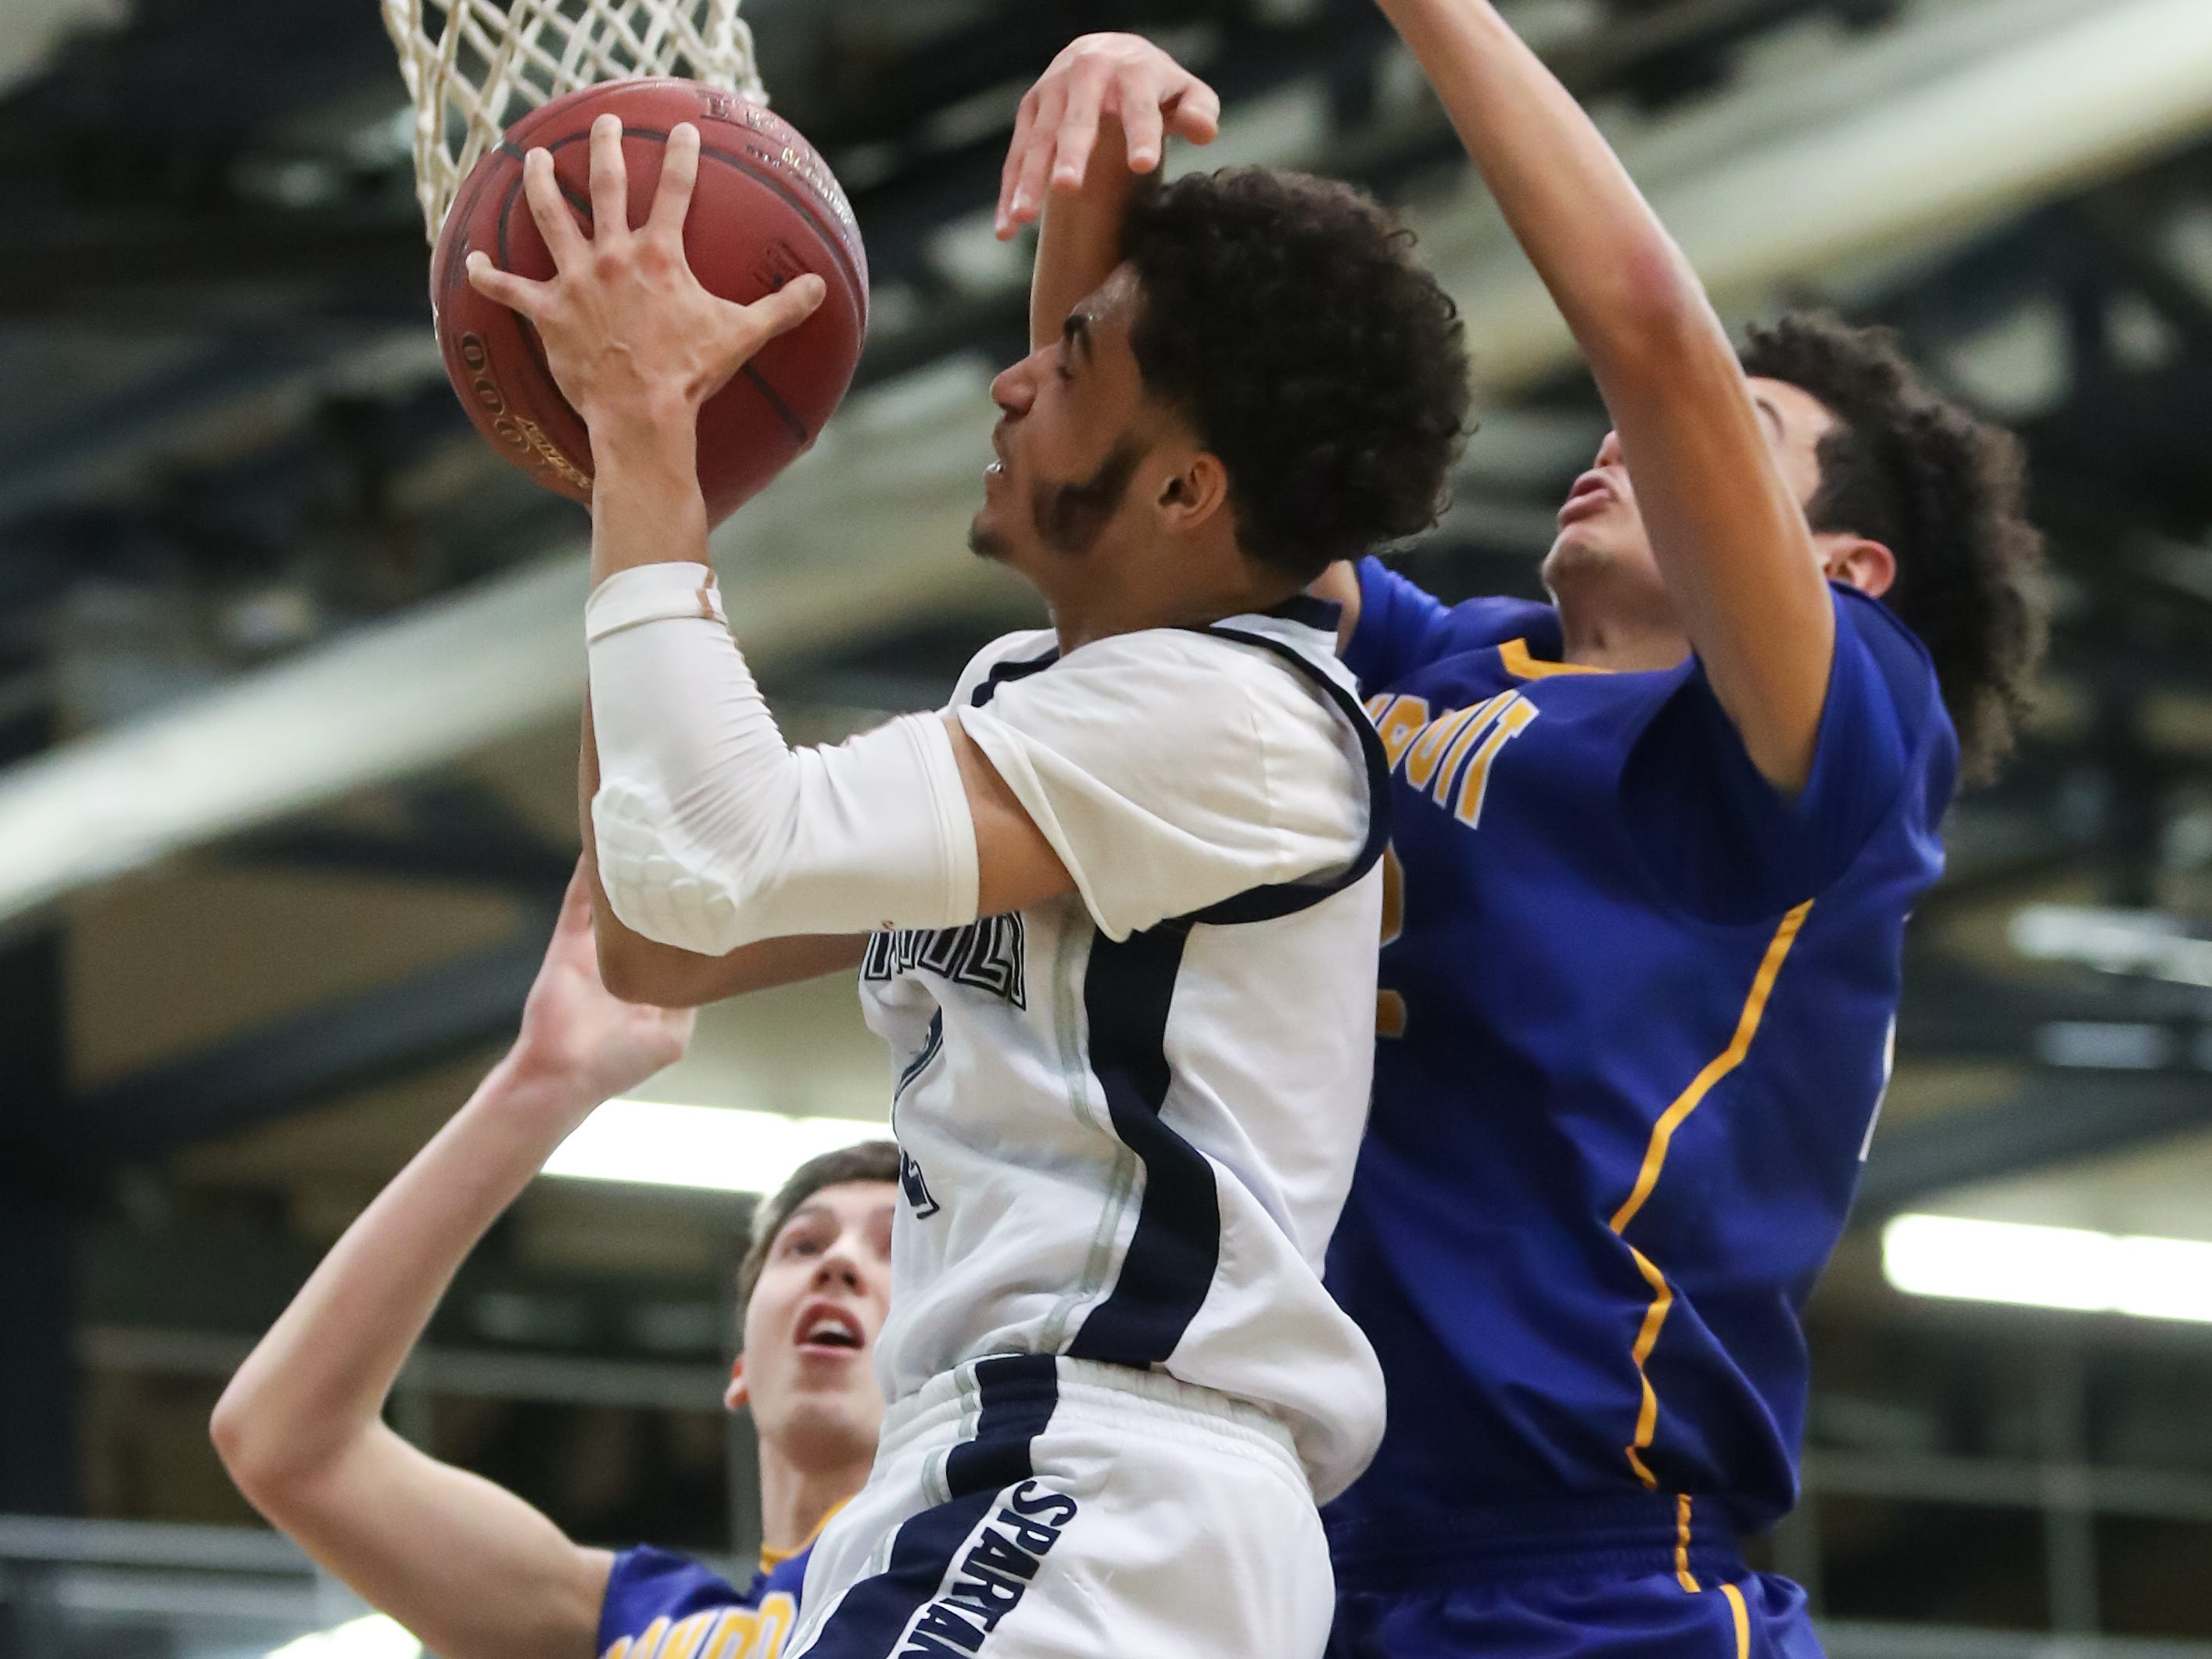 Gates Chili guard Devin Walton (2) goes to the hoop against Irondequoit forward Kenny Gonzalez (22) during a Section V high school boys basketball game at Gates Chili High School on Feb. 1, 2019.